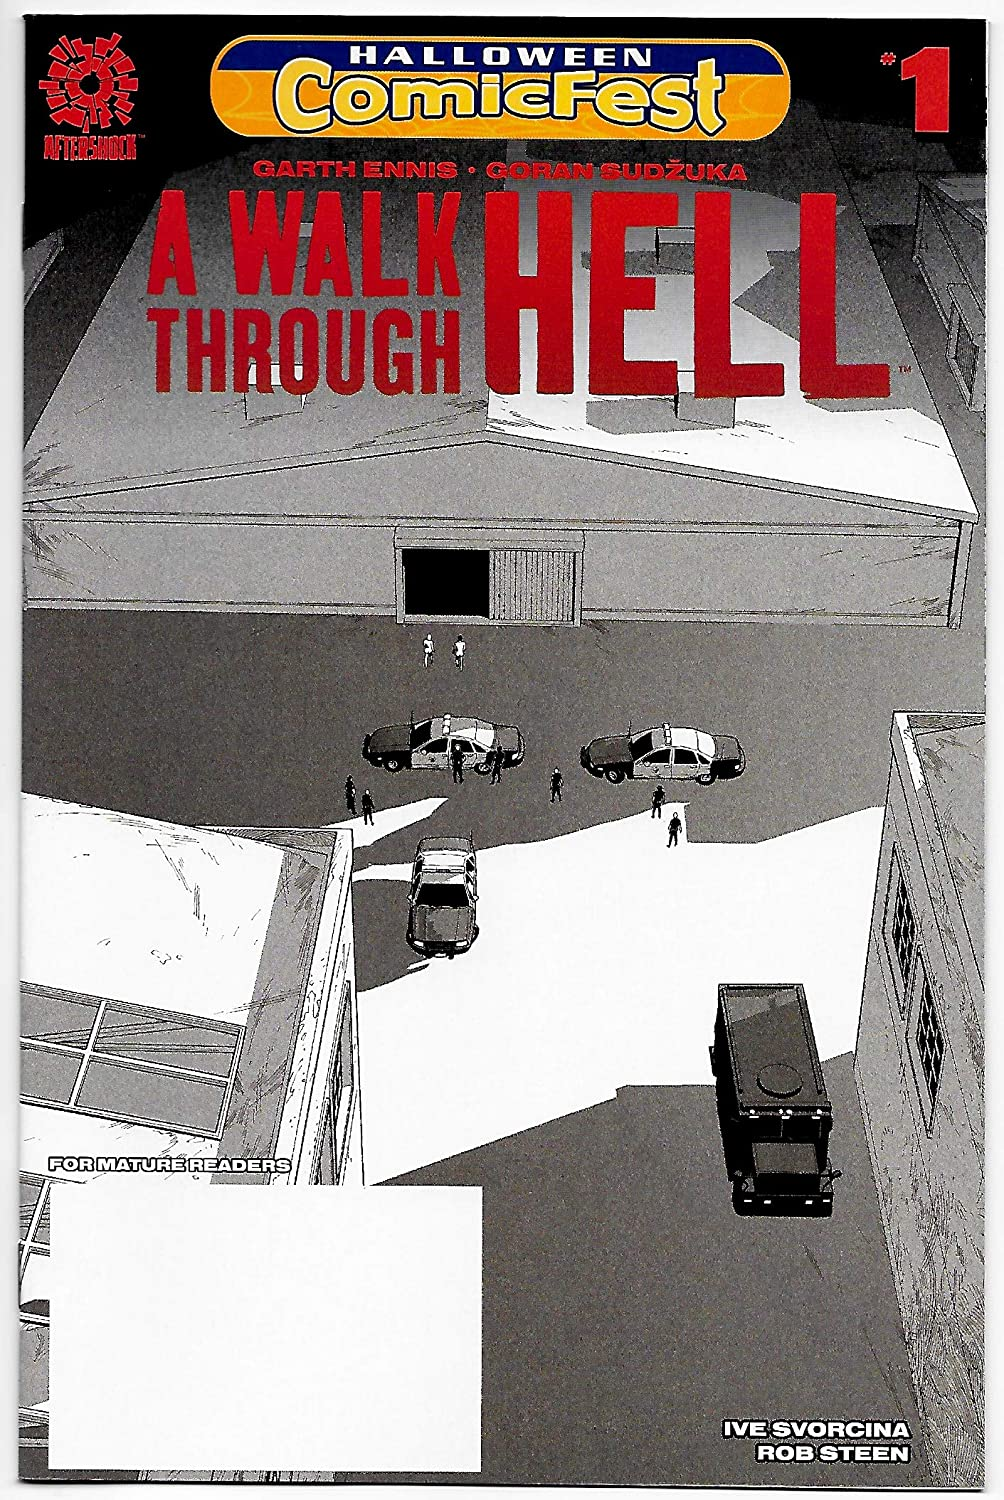 HCF Halloween ComicFest A Walk Through Hell #1 (Aftershock, 2018) NM